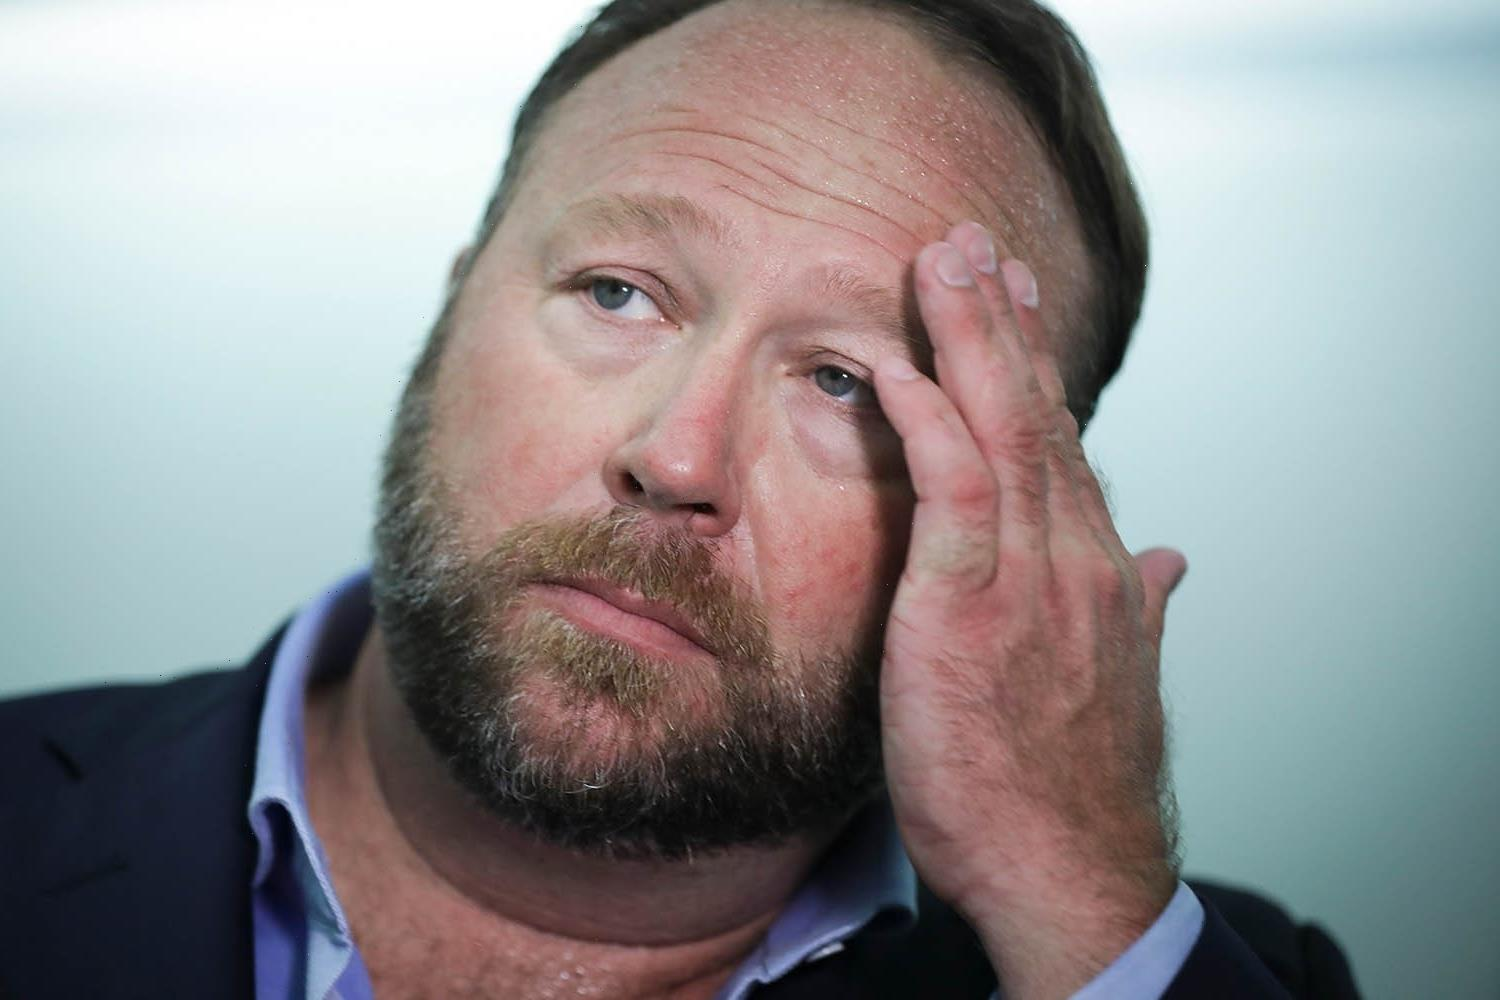 Alex Jones fumes as judge rules he must pay damages to Sandy Hook families